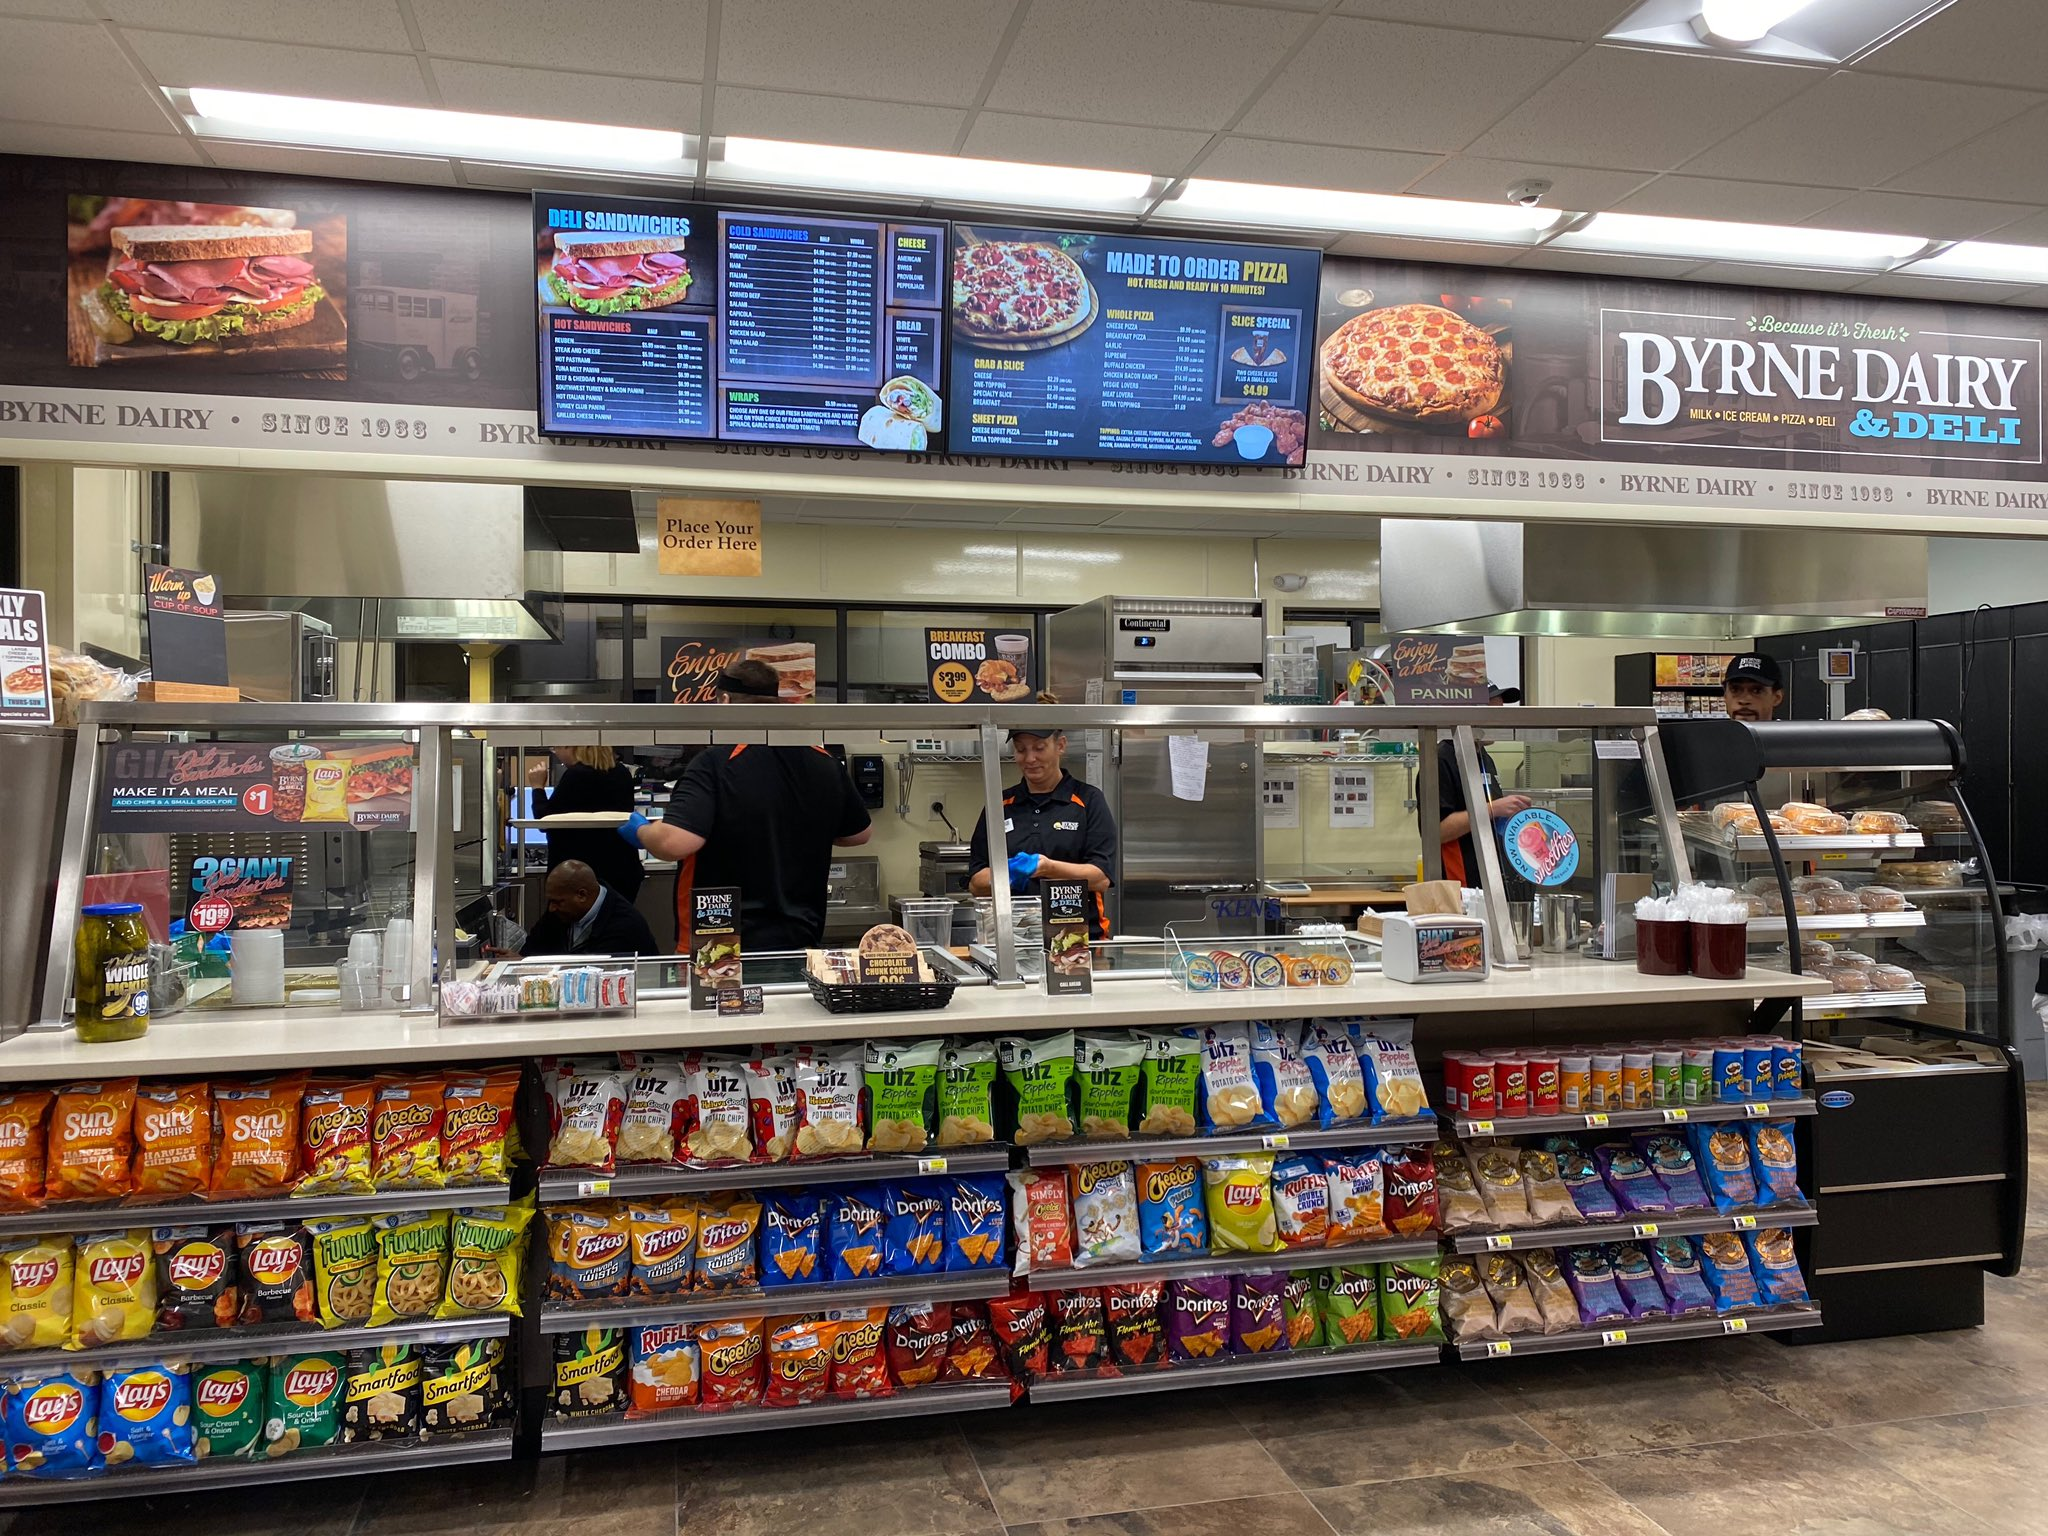 Byrne Dairy to offer gas for $1.99 for cardholders as new Farmington location opens